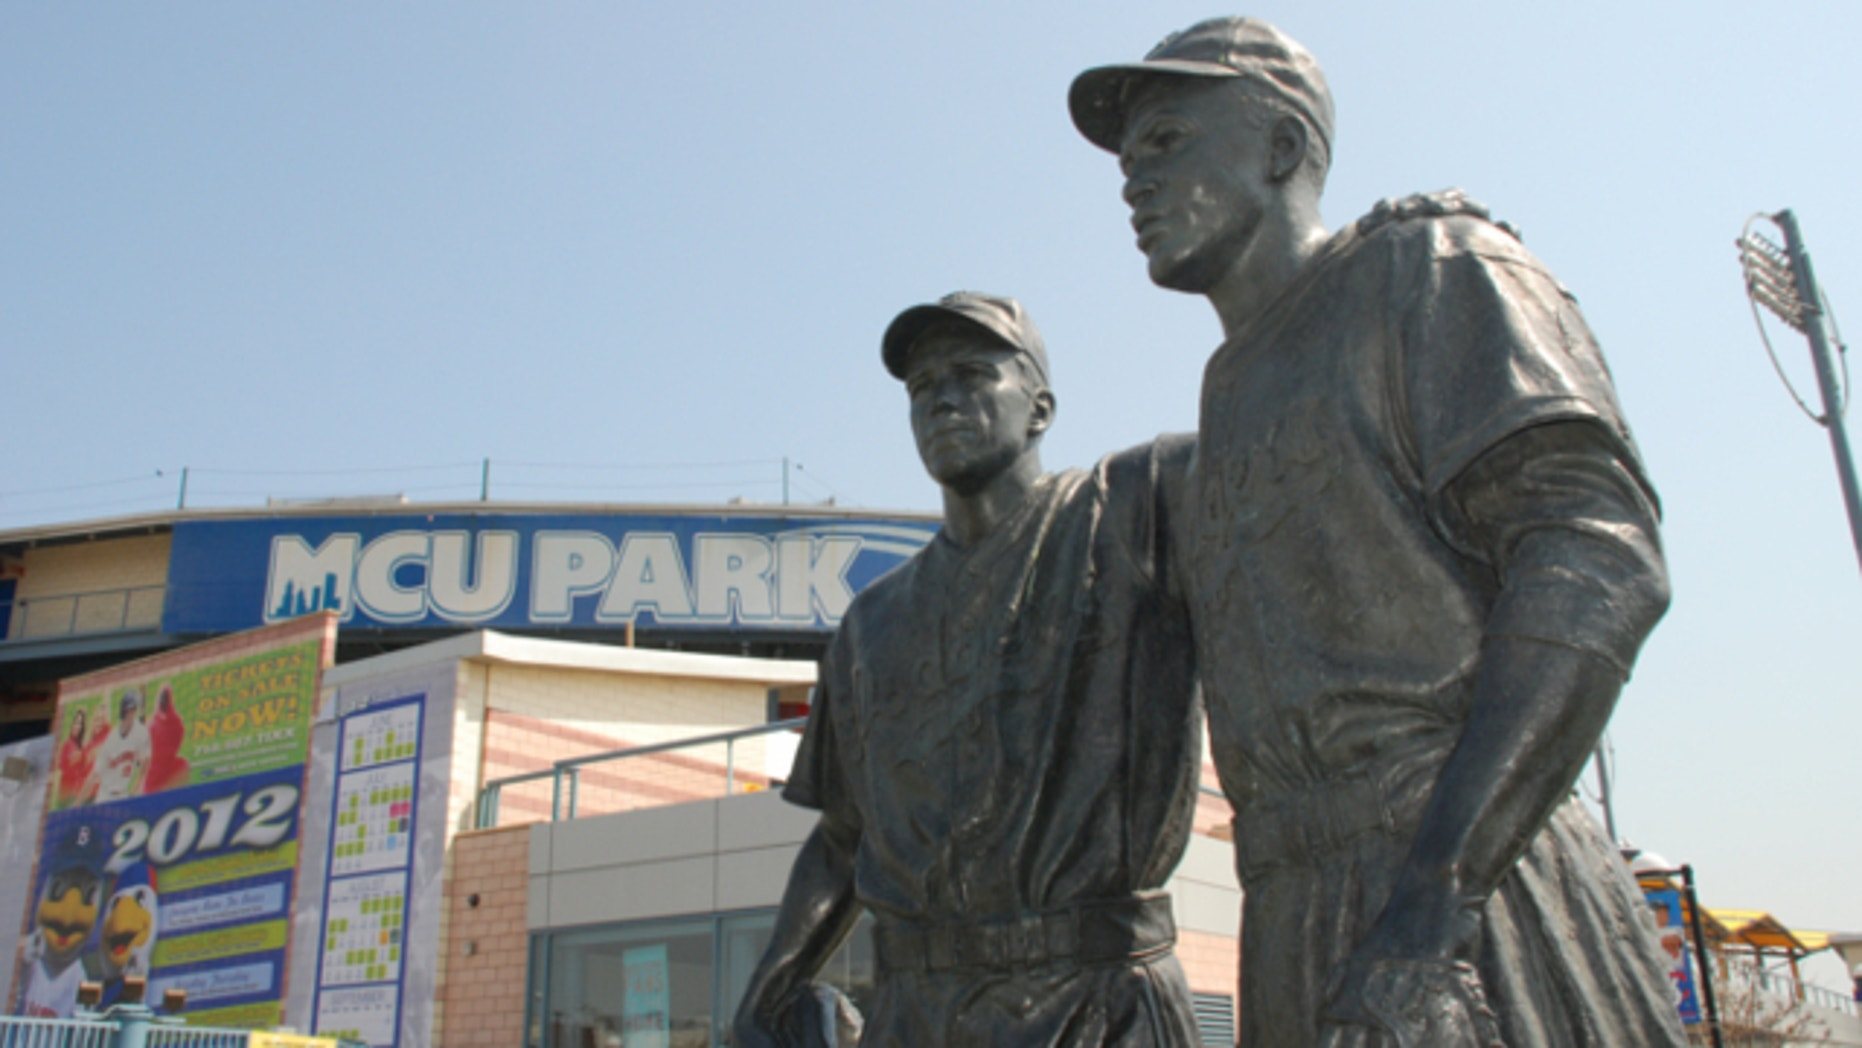 FILE: This undated image provided by the Brooklyn Cyclones shows a statue of Pee Wee Reese and Jackie Robinson at MCU Park in the Coney Island section of the Brooklyn borough of New York.